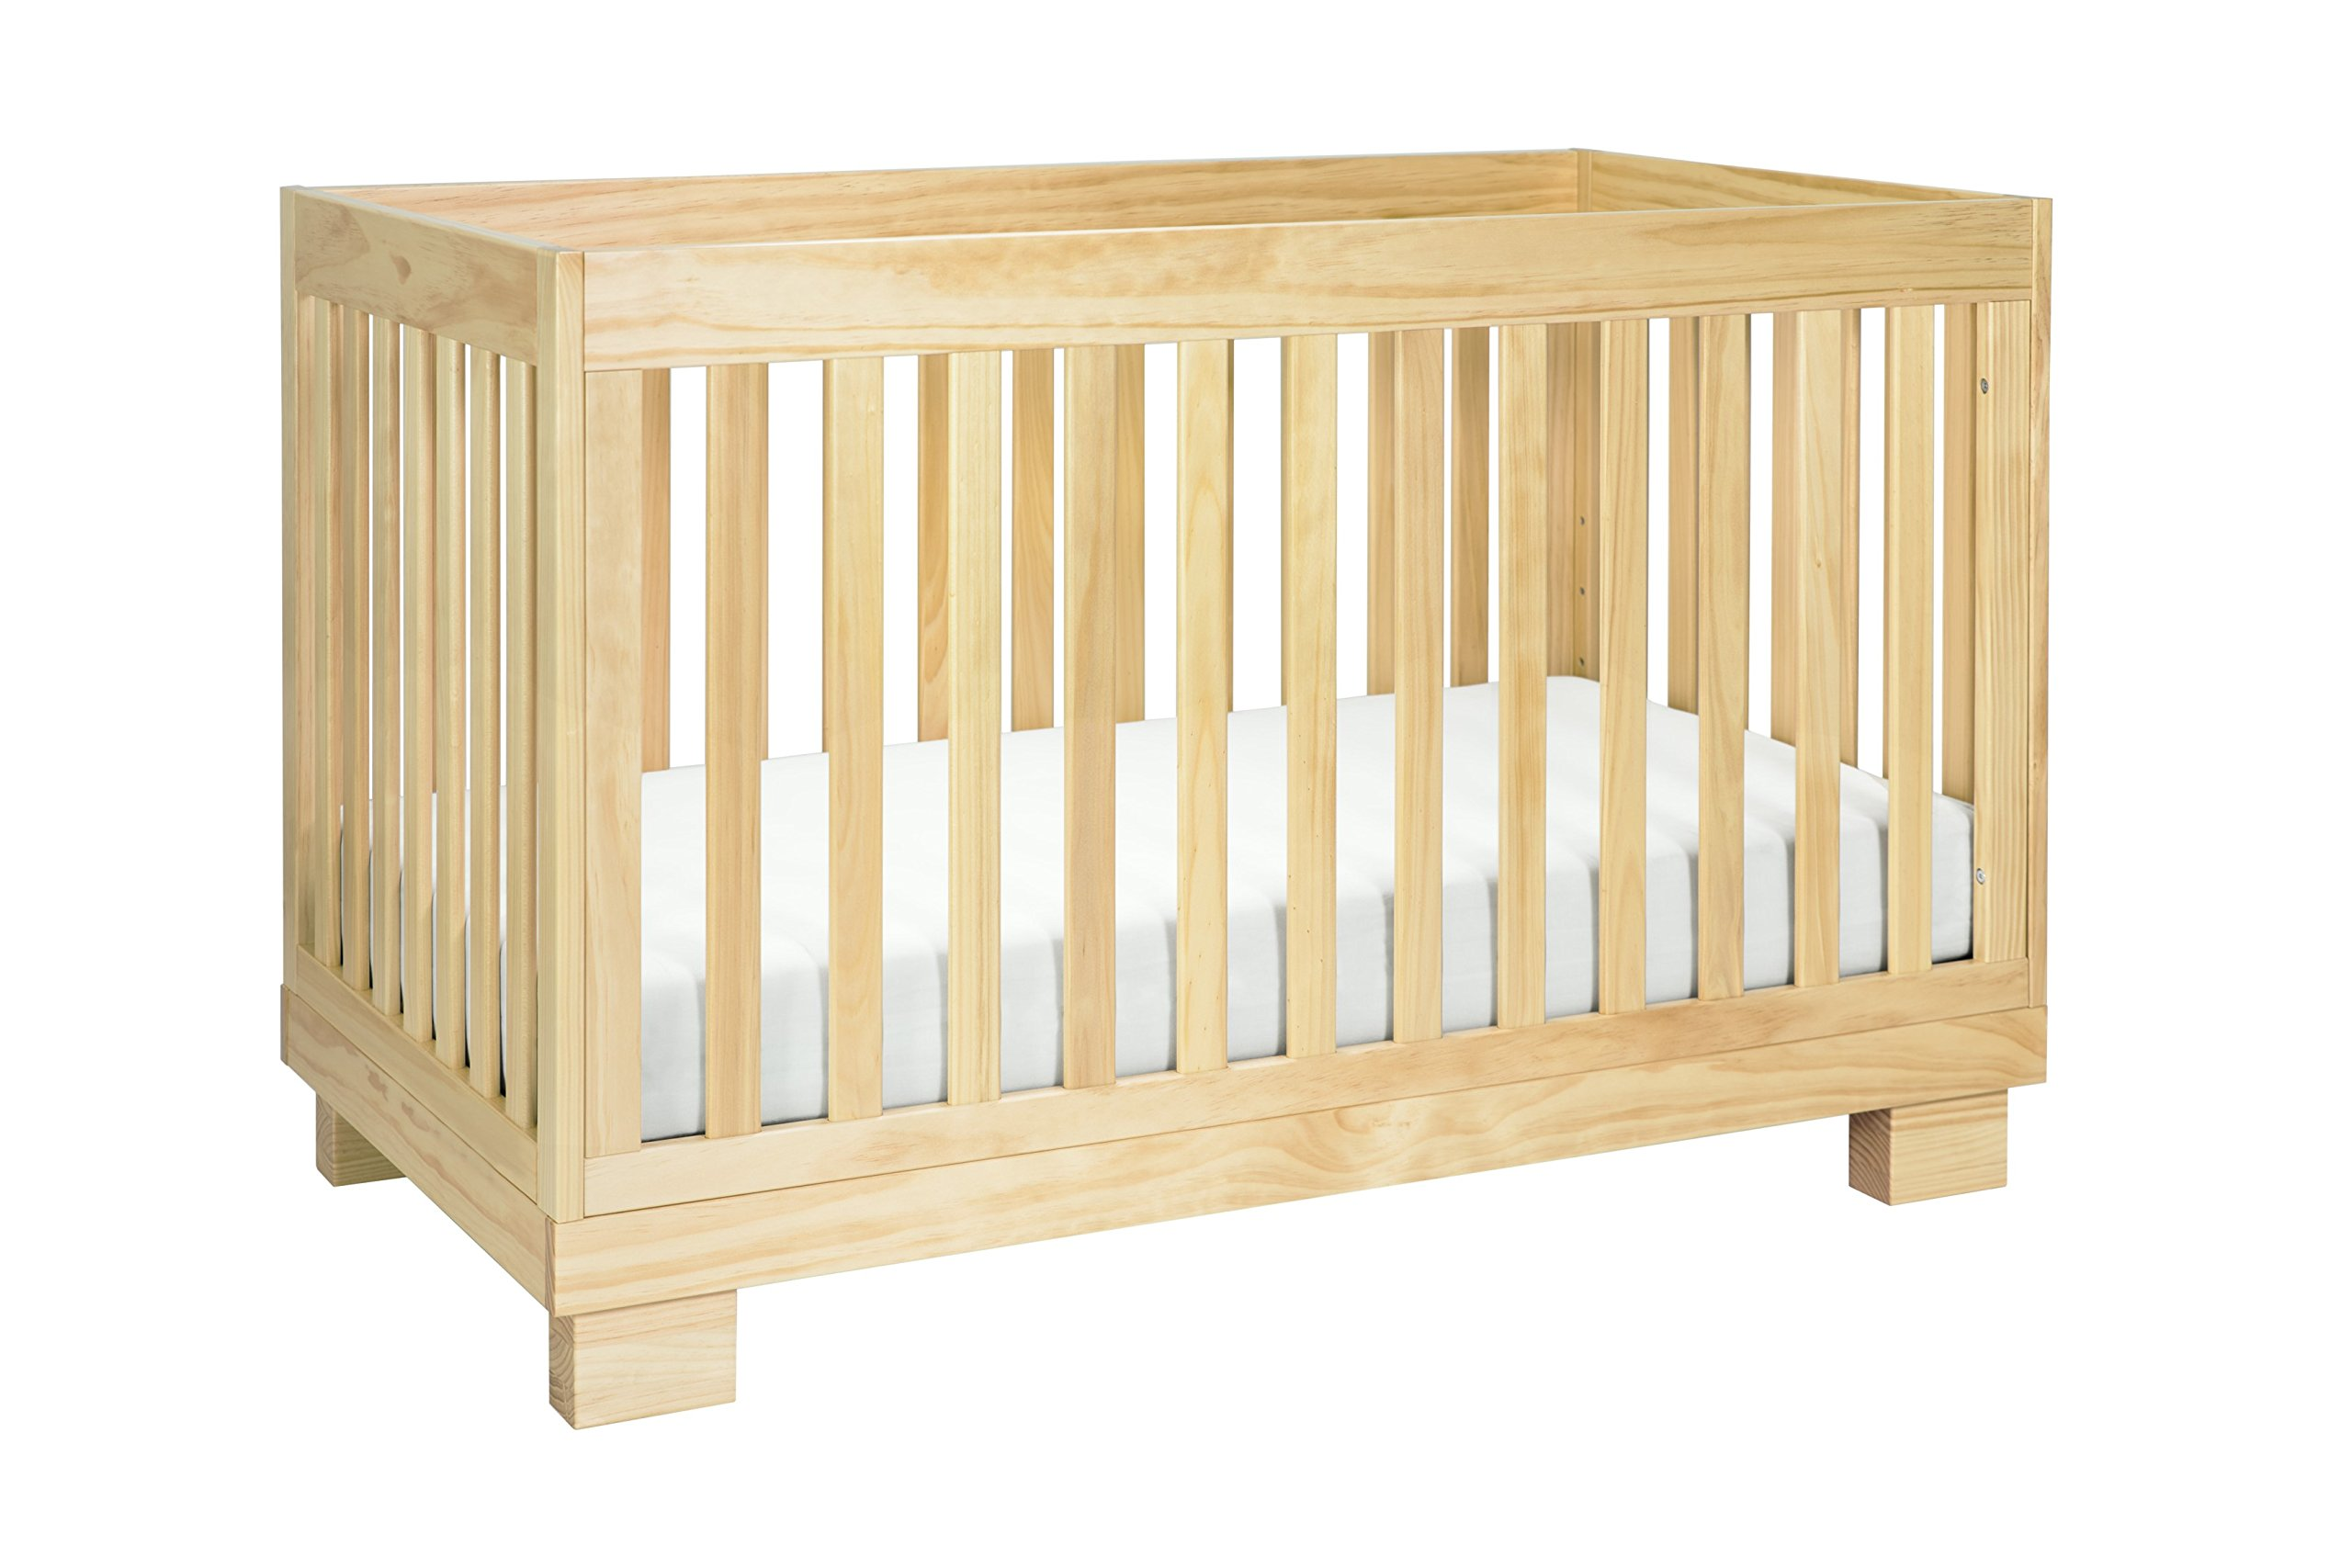 Babyletto Modo 3-in-1 Convertible Crib with Toddler Bed Conversion Kit, Natural